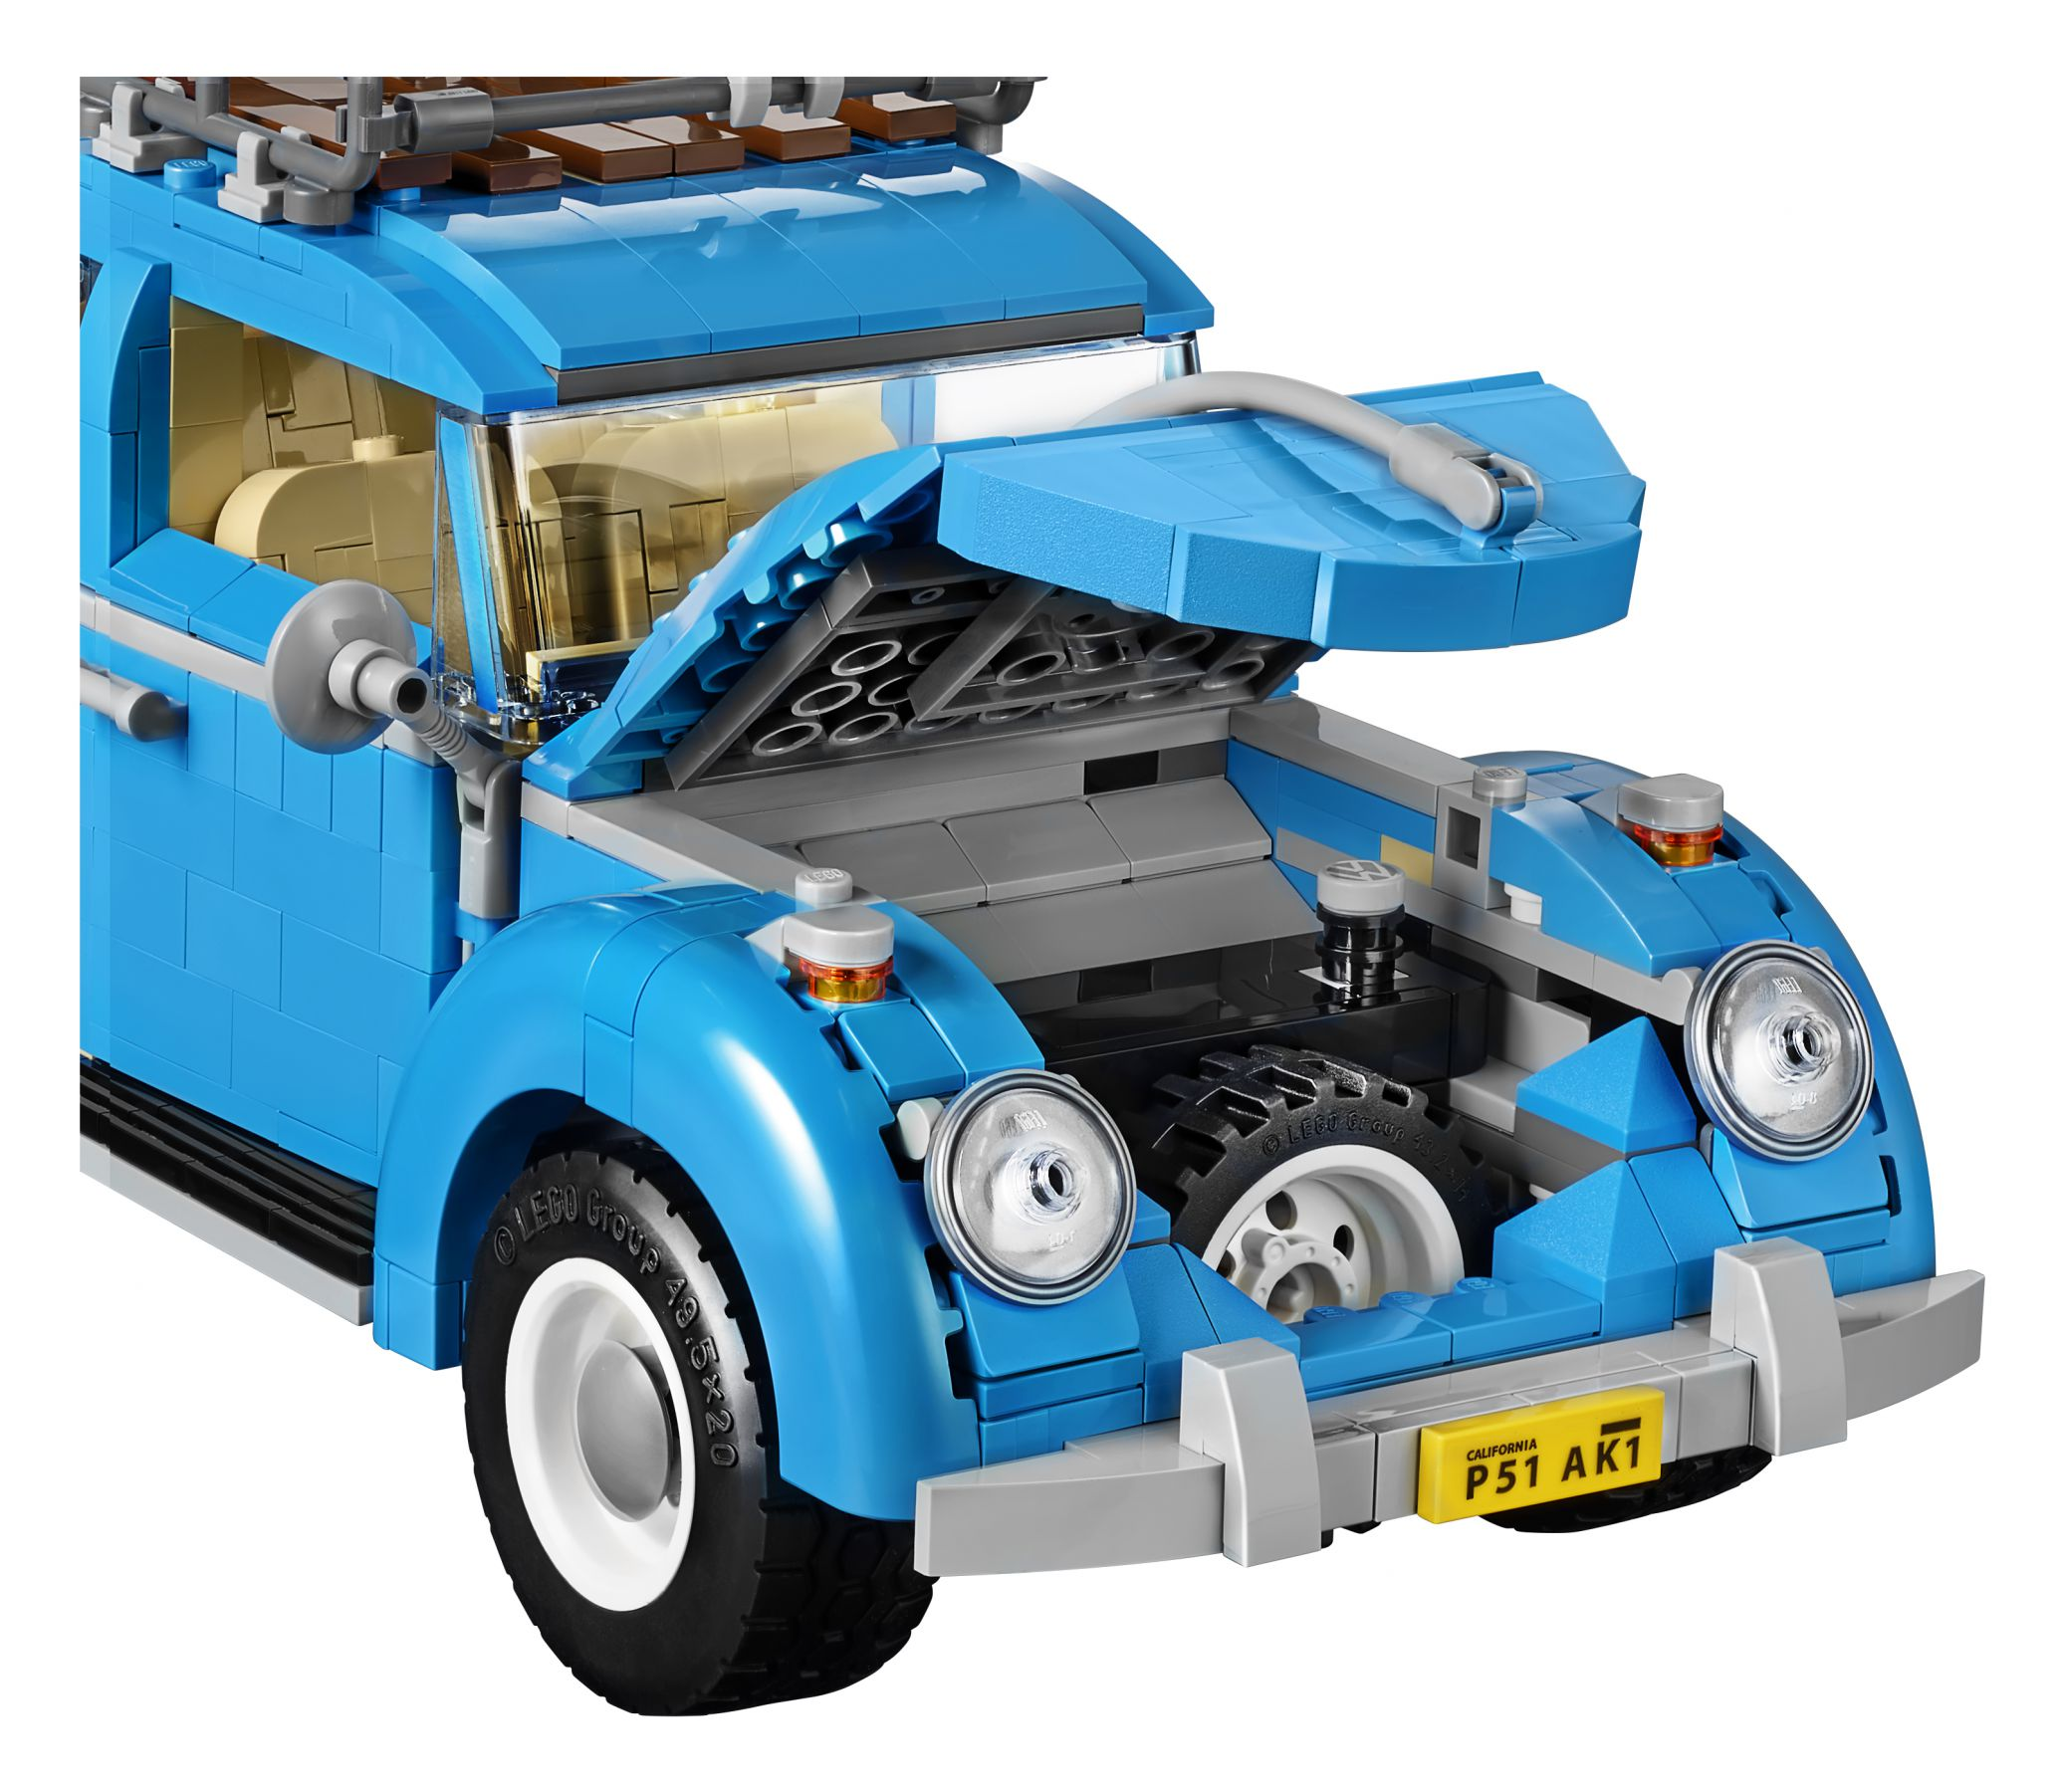 LEGO Advanced Models 10252 VW Käfer LEGO_10252_Volkswagen_Beetle_09.jpg